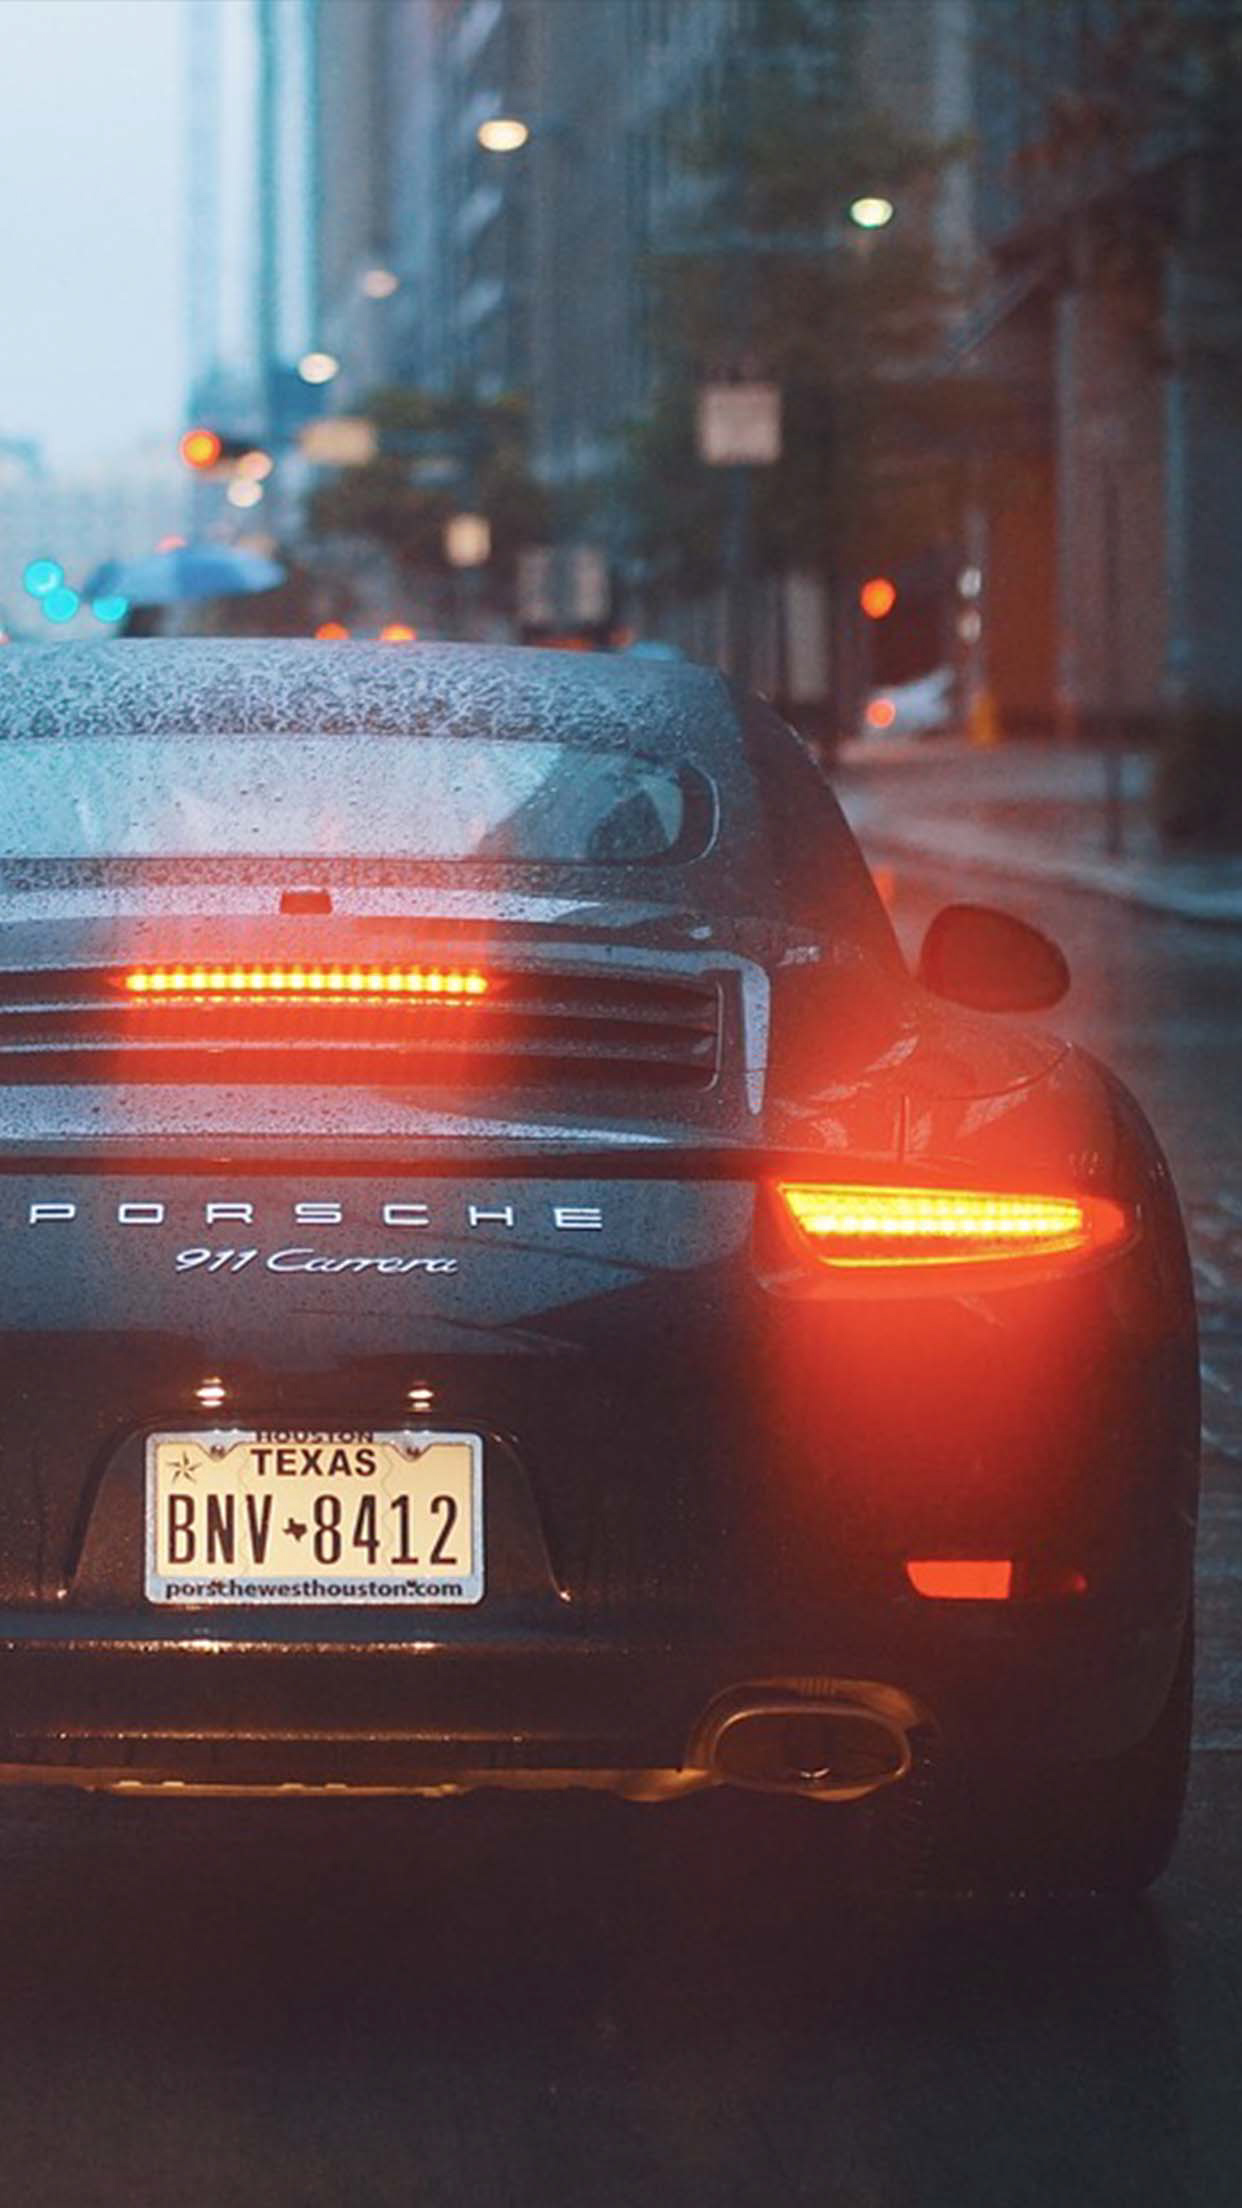 Porsche Car in Rain Iphone wallpaper